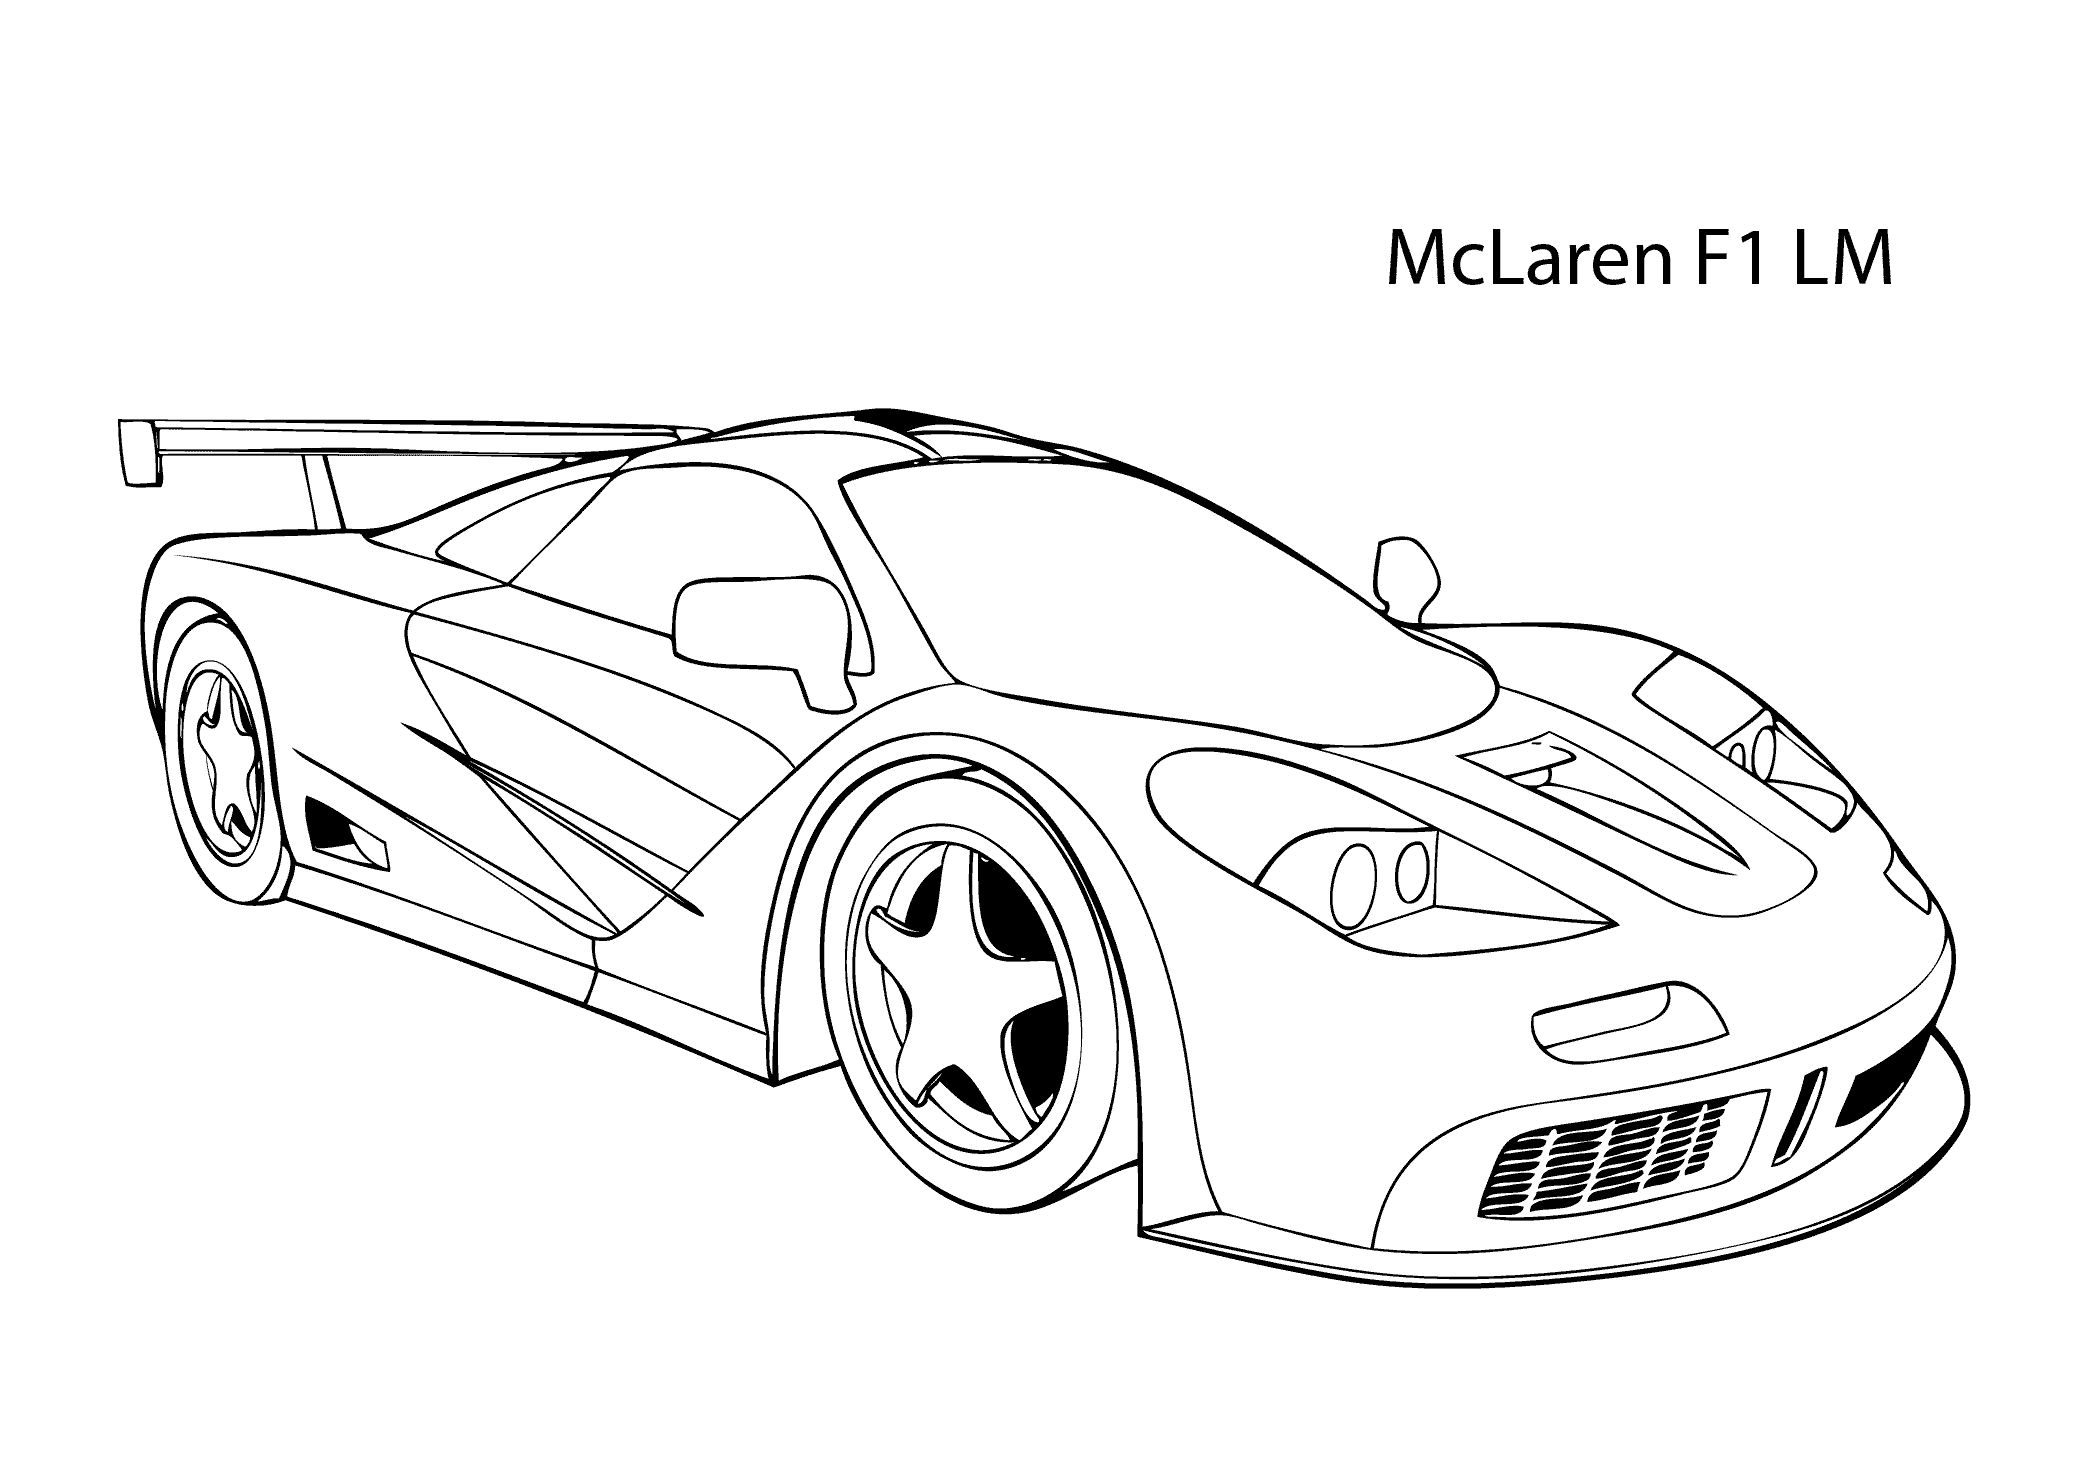 Mclaren Coloring Pages Printable Sports Coloring Pages Cars Coloring Pages Race Car Coloring Pages